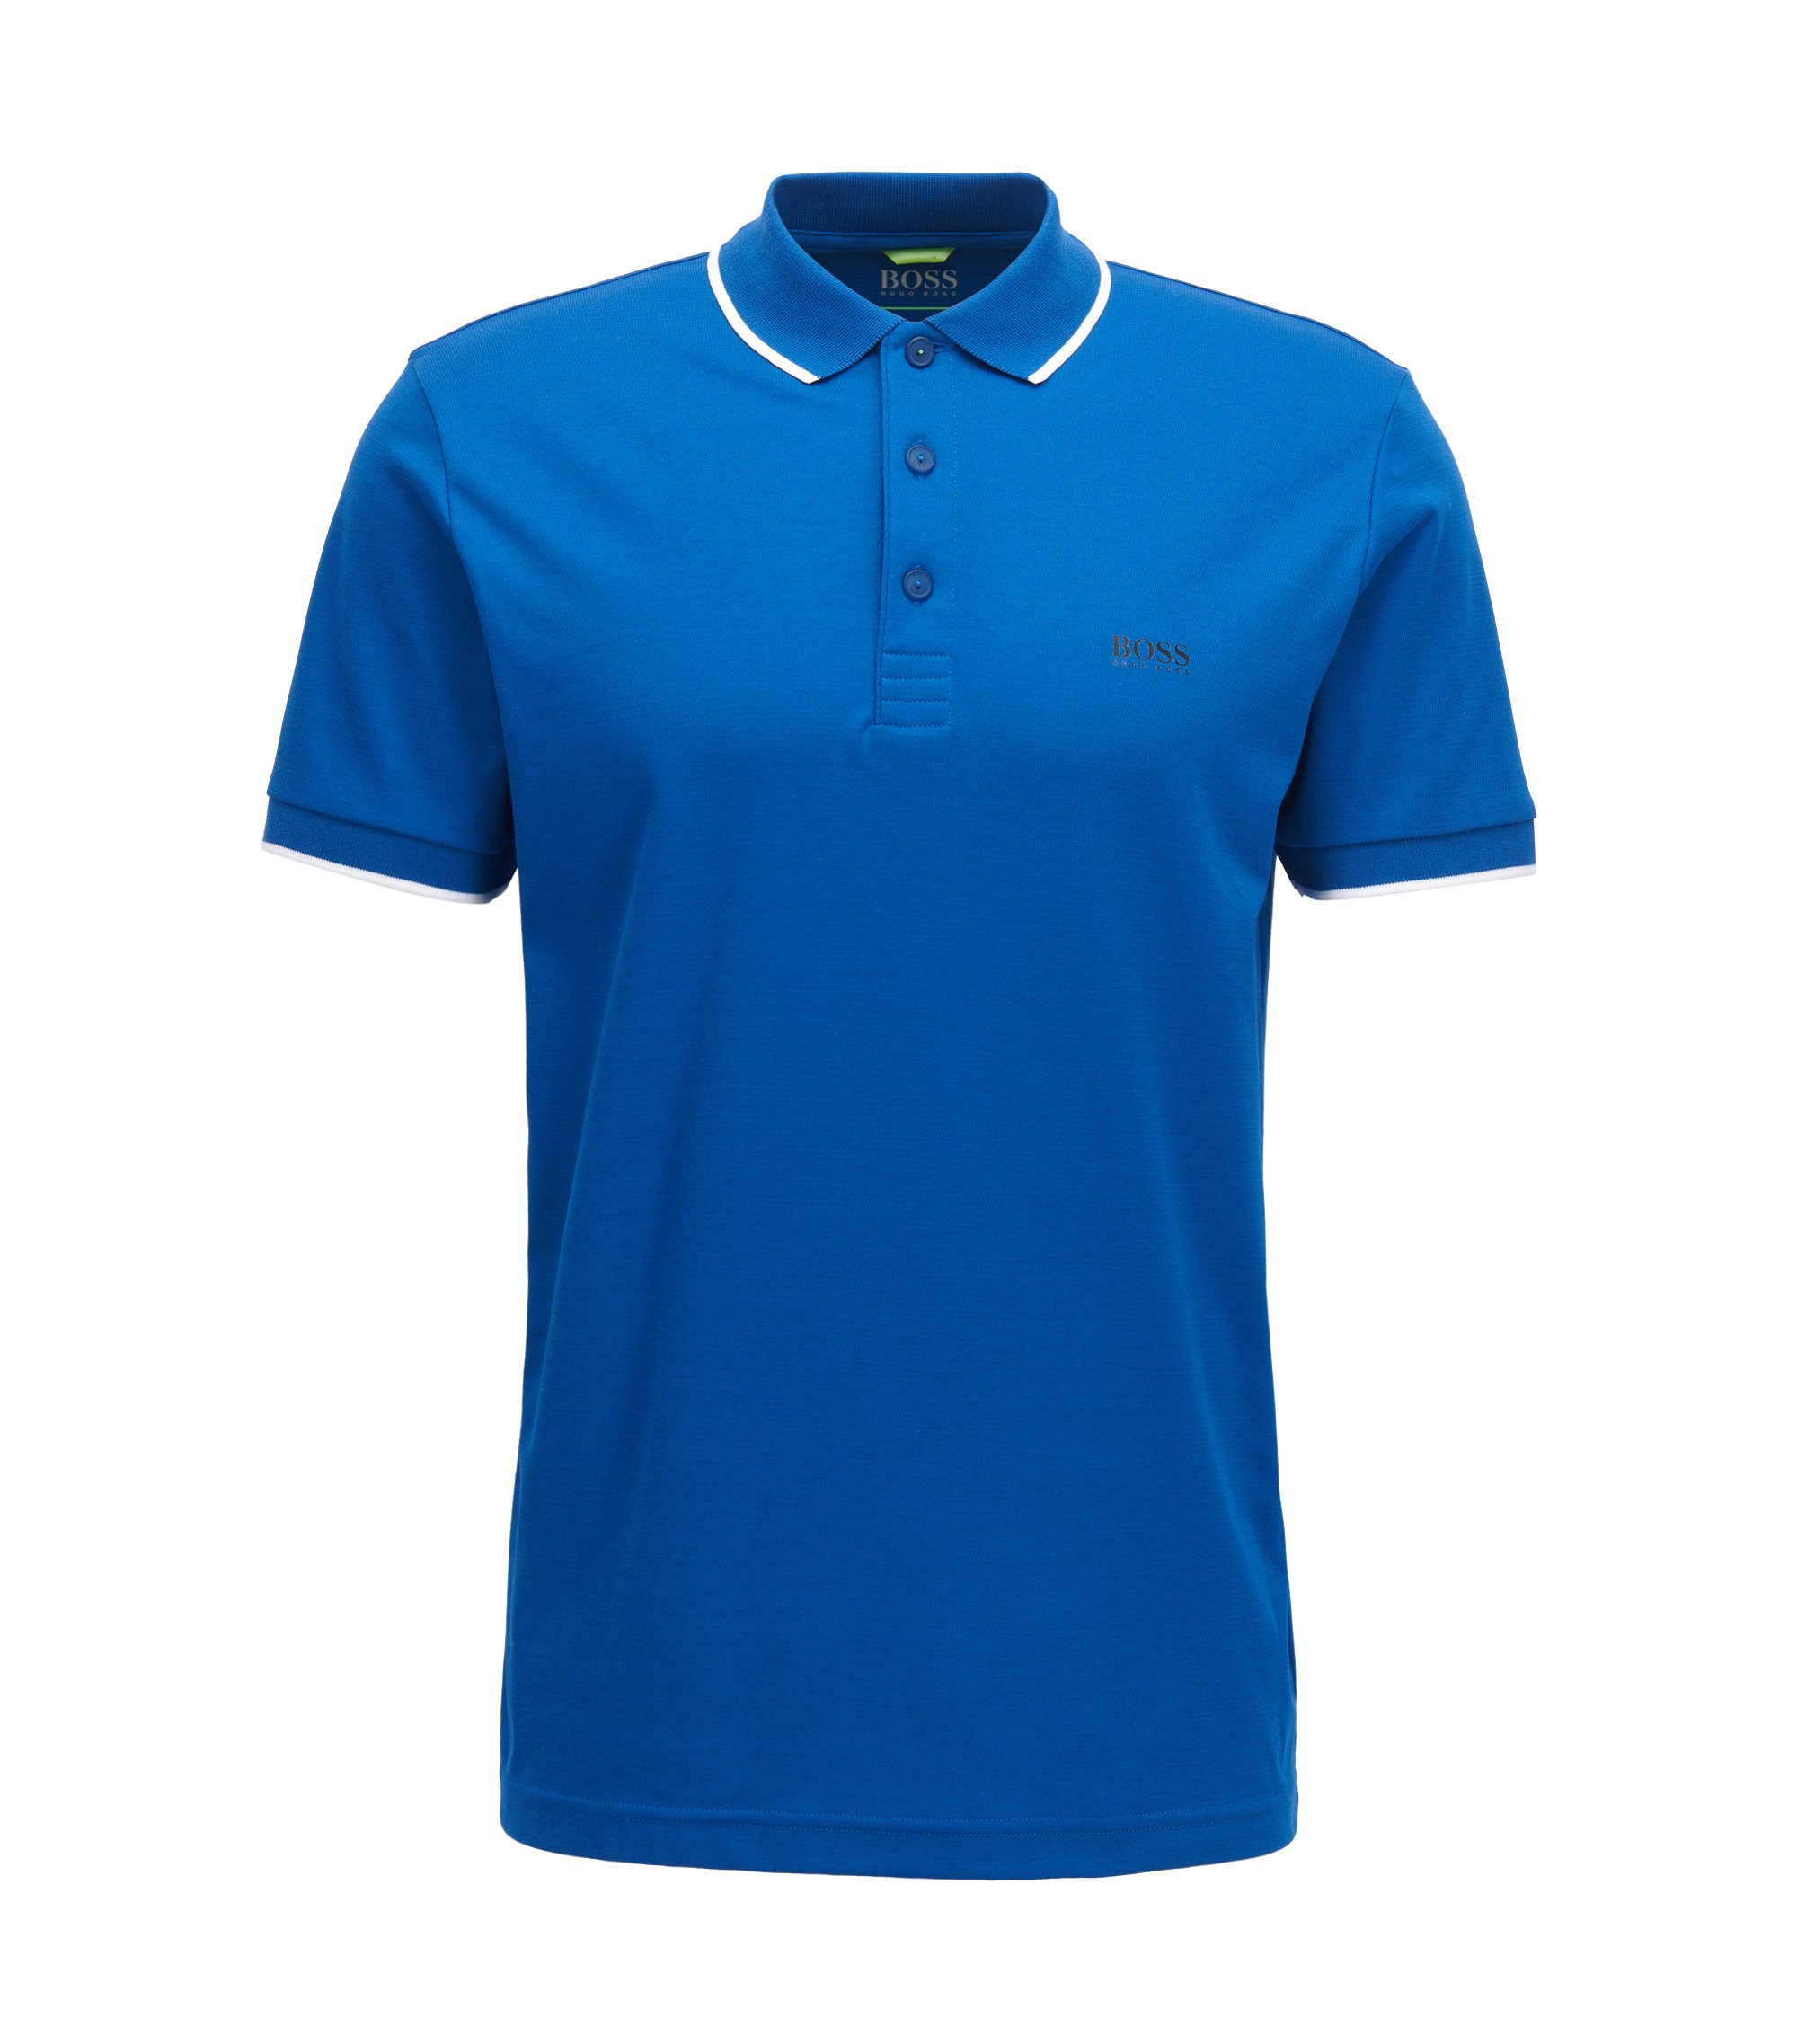 Tipped Cotton Blend Polo Shirt, Slim Fit | PL Tech, Blue